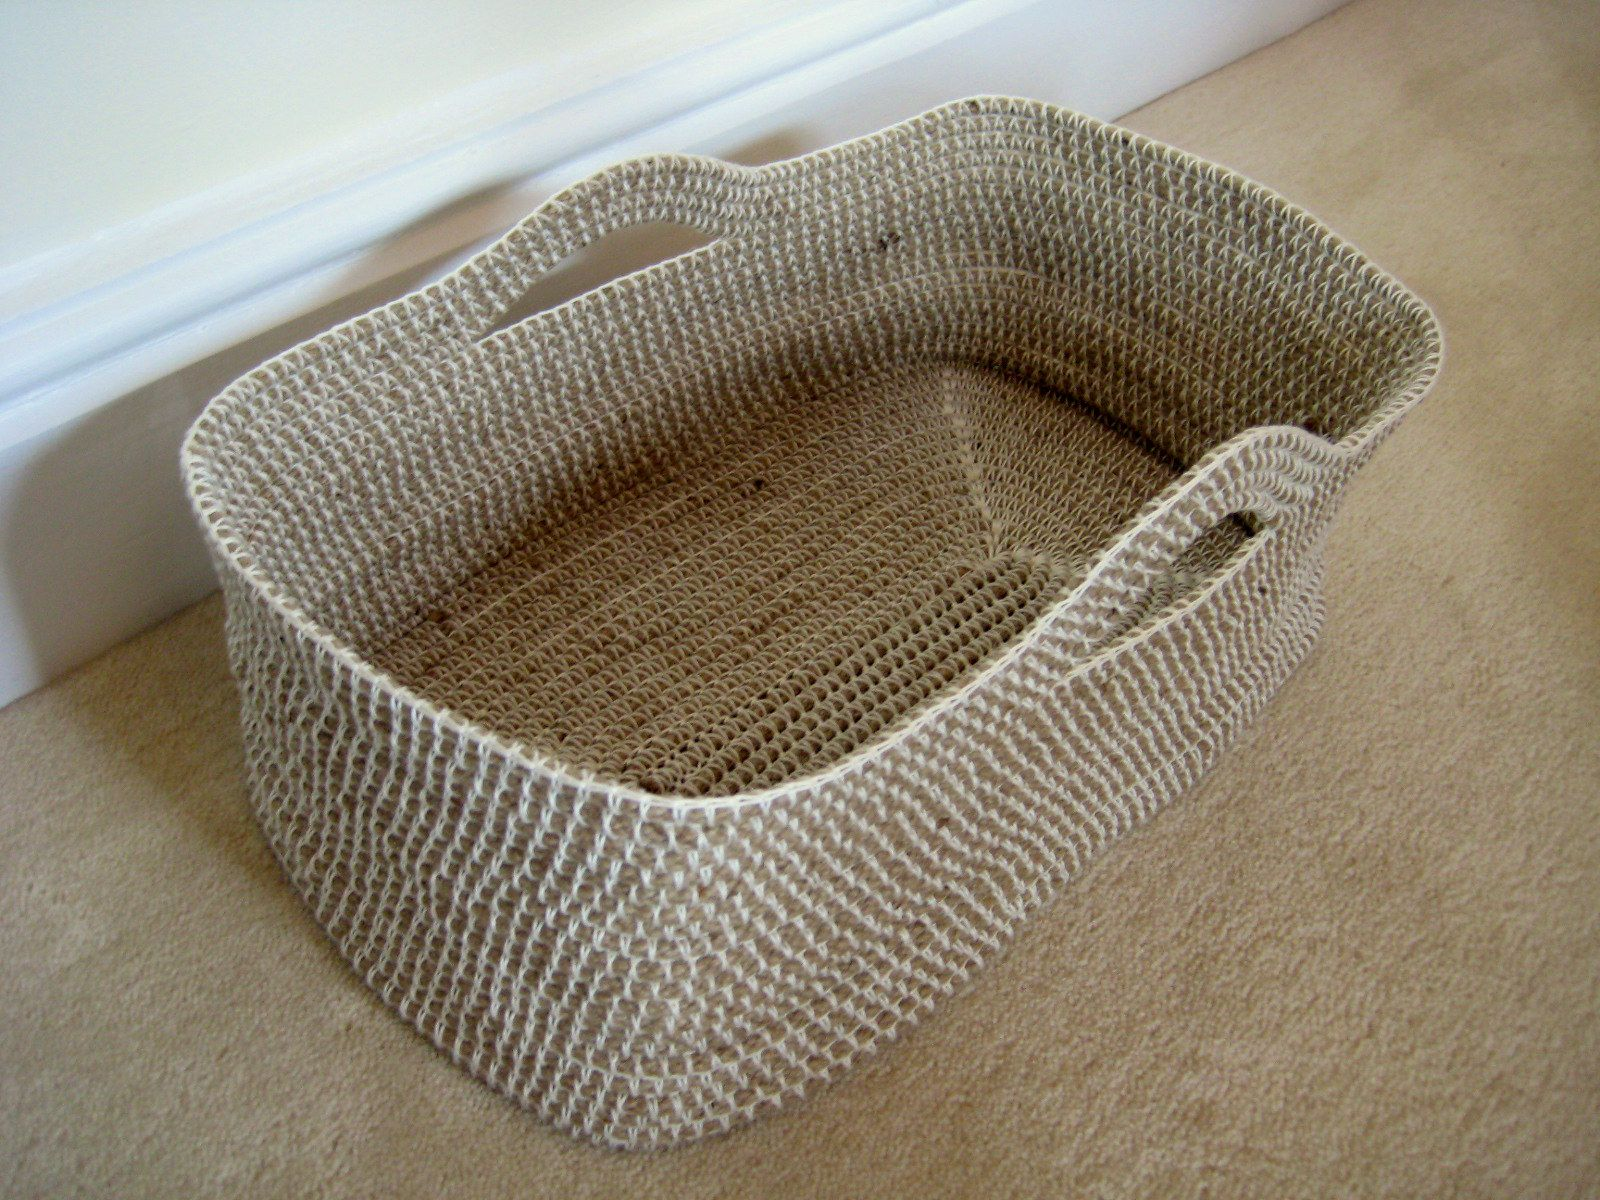 Oh my I love this basket pattern! Perfect for yarn, kitties, toys ...